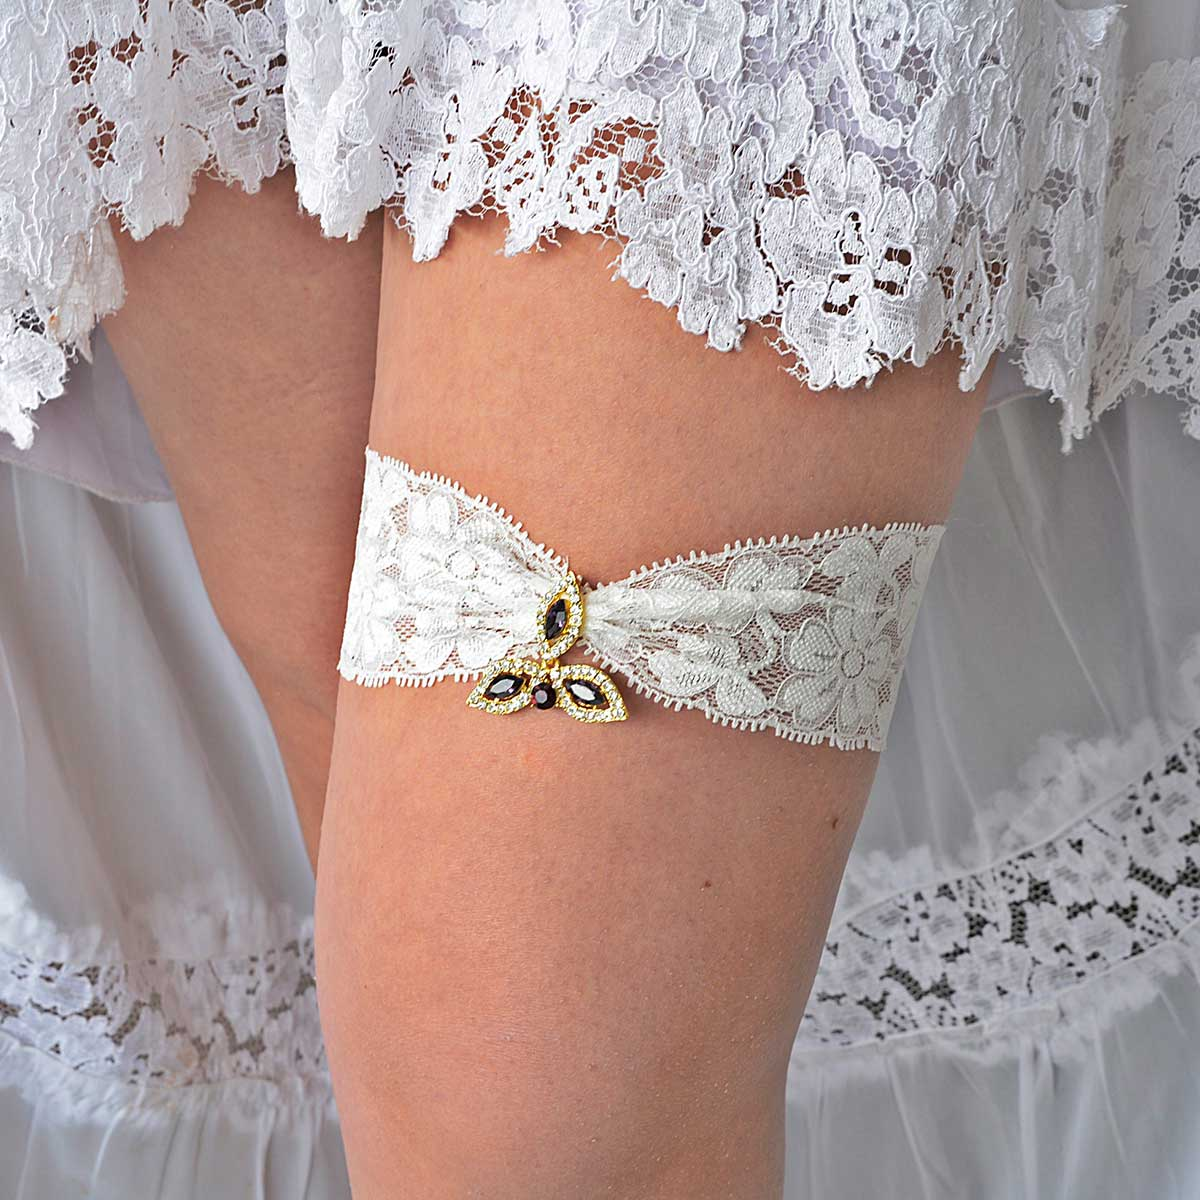 Gold & Purple Rhinestone Bridal Garter Set With Ivory Lace - Wedding Garter - SuzannaM Designs